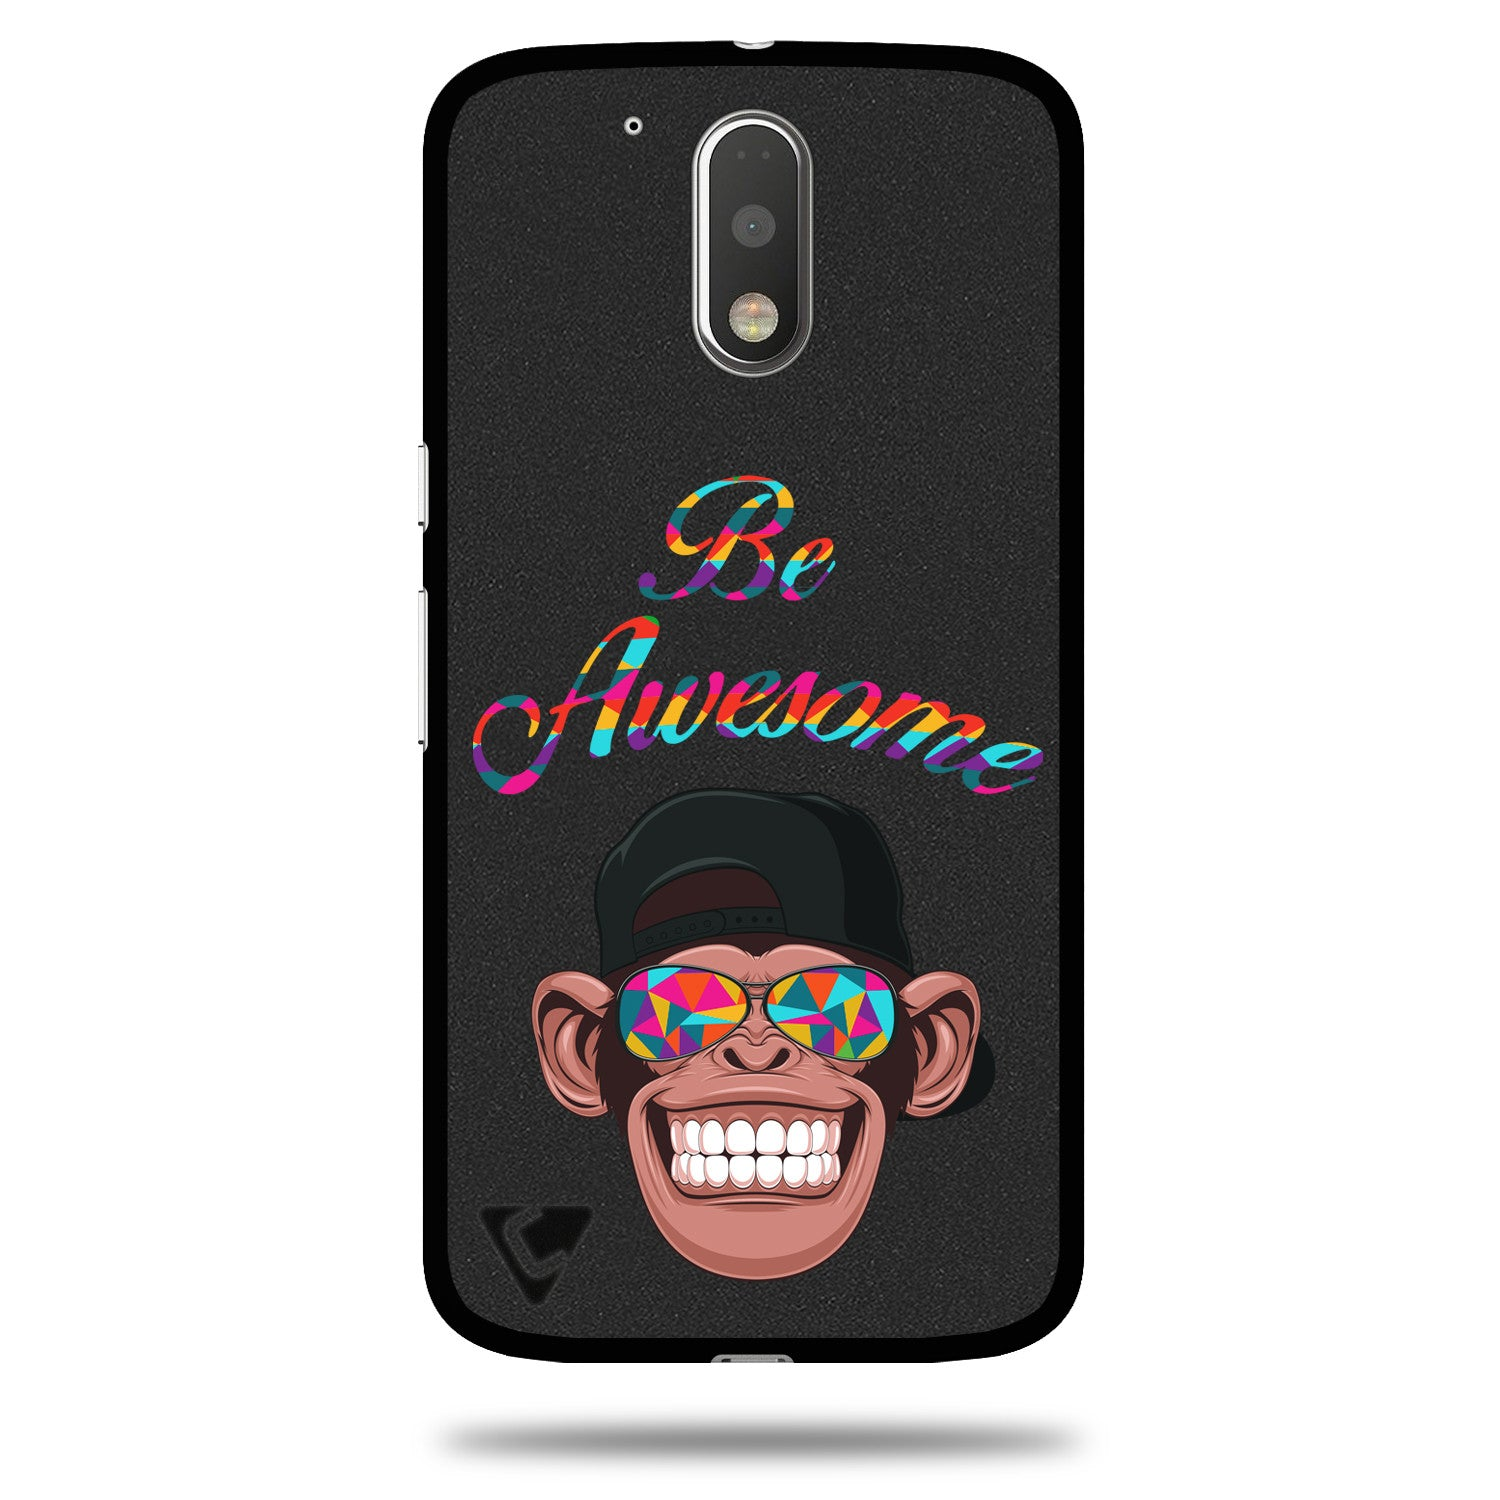 Flexible & Low Profile Printed TPU Back Cover for Moto G4 Plus & Moto G4 – Be Awesome: Motivational Quote